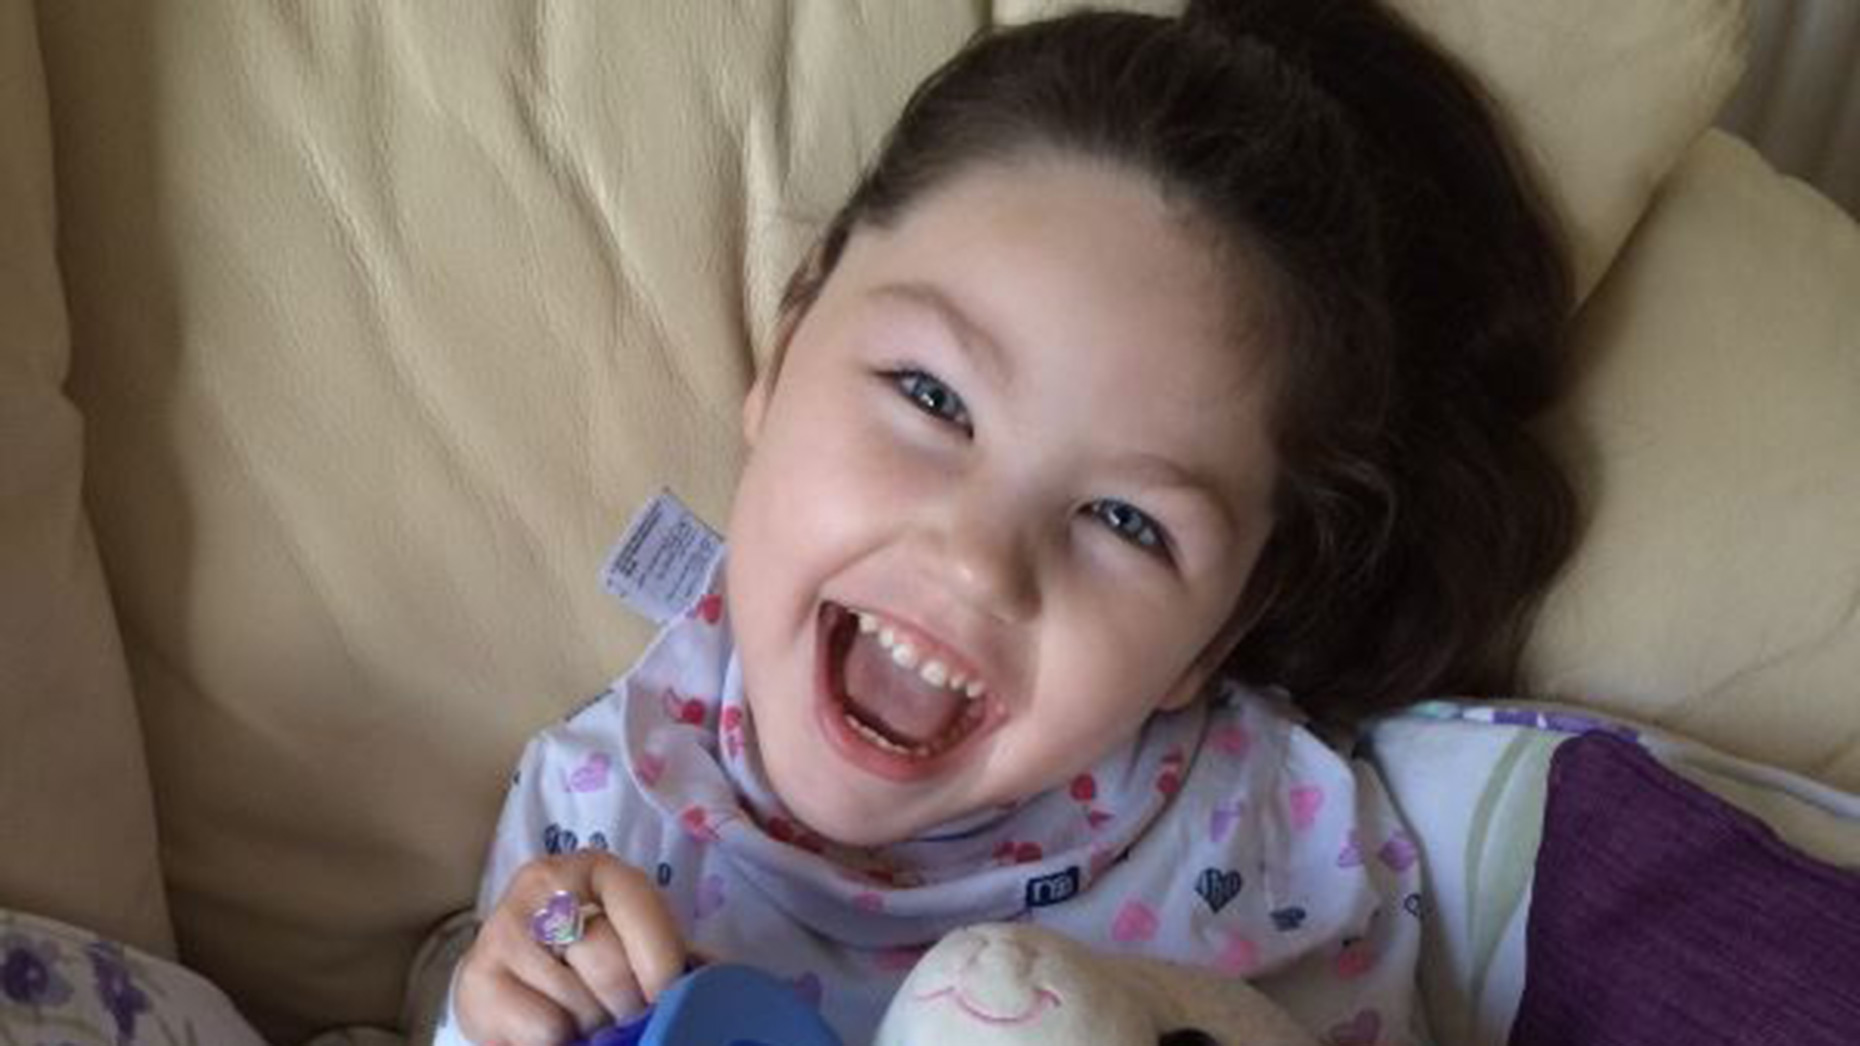 Five-year-old Lilly Desforges, who suffers from cerebral palsy